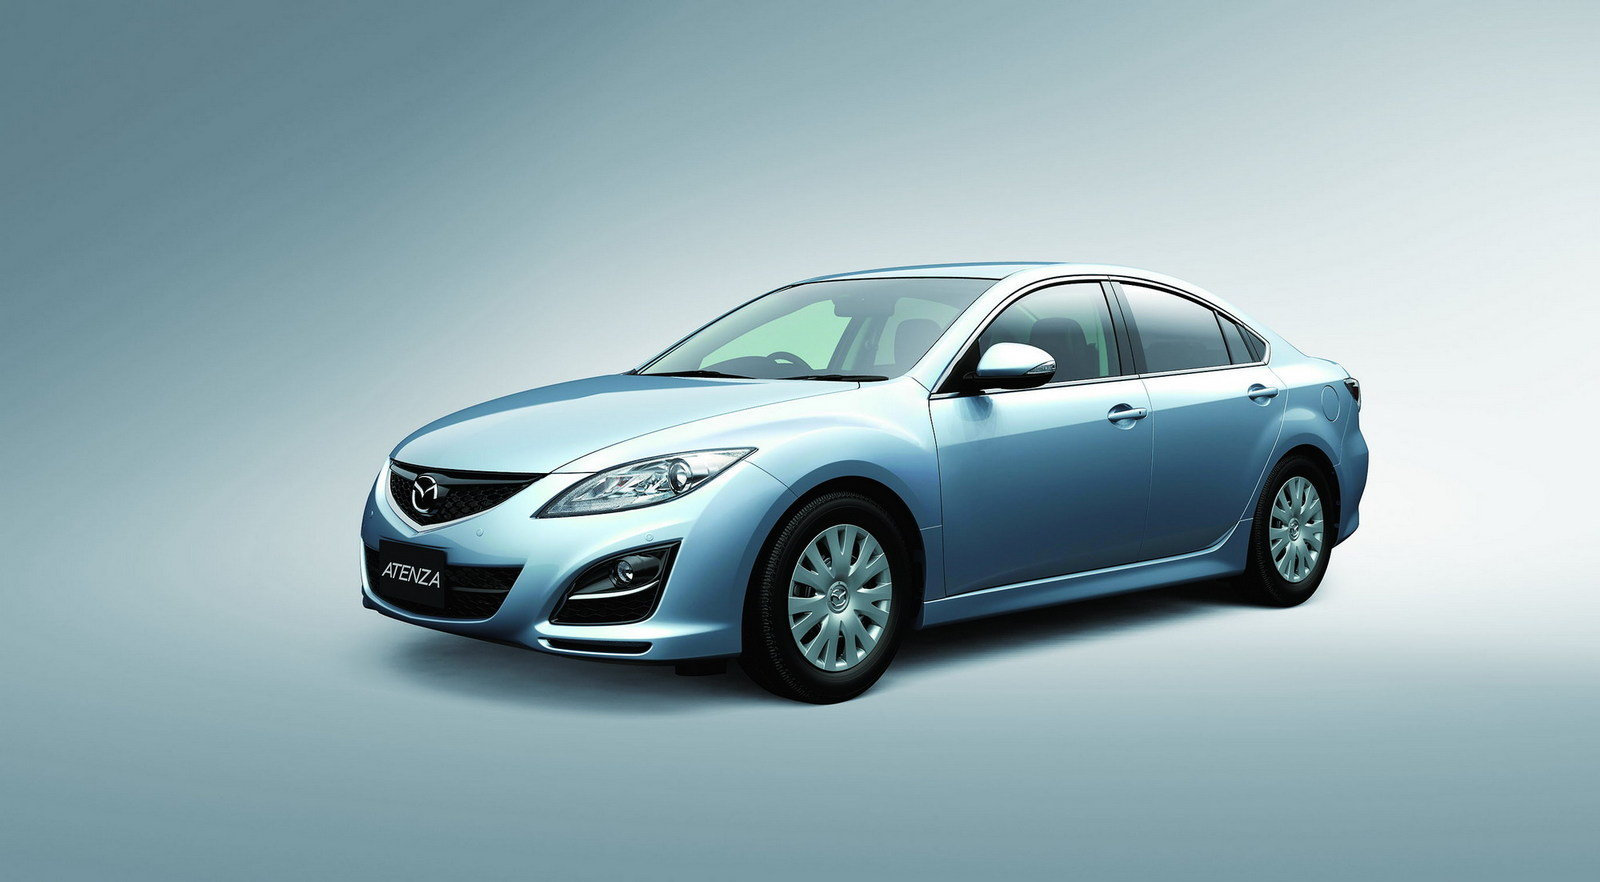 2011 mazda6 picture 344171 car review top speed. Black Bedroom Furniture Sets. Home Design Ideas